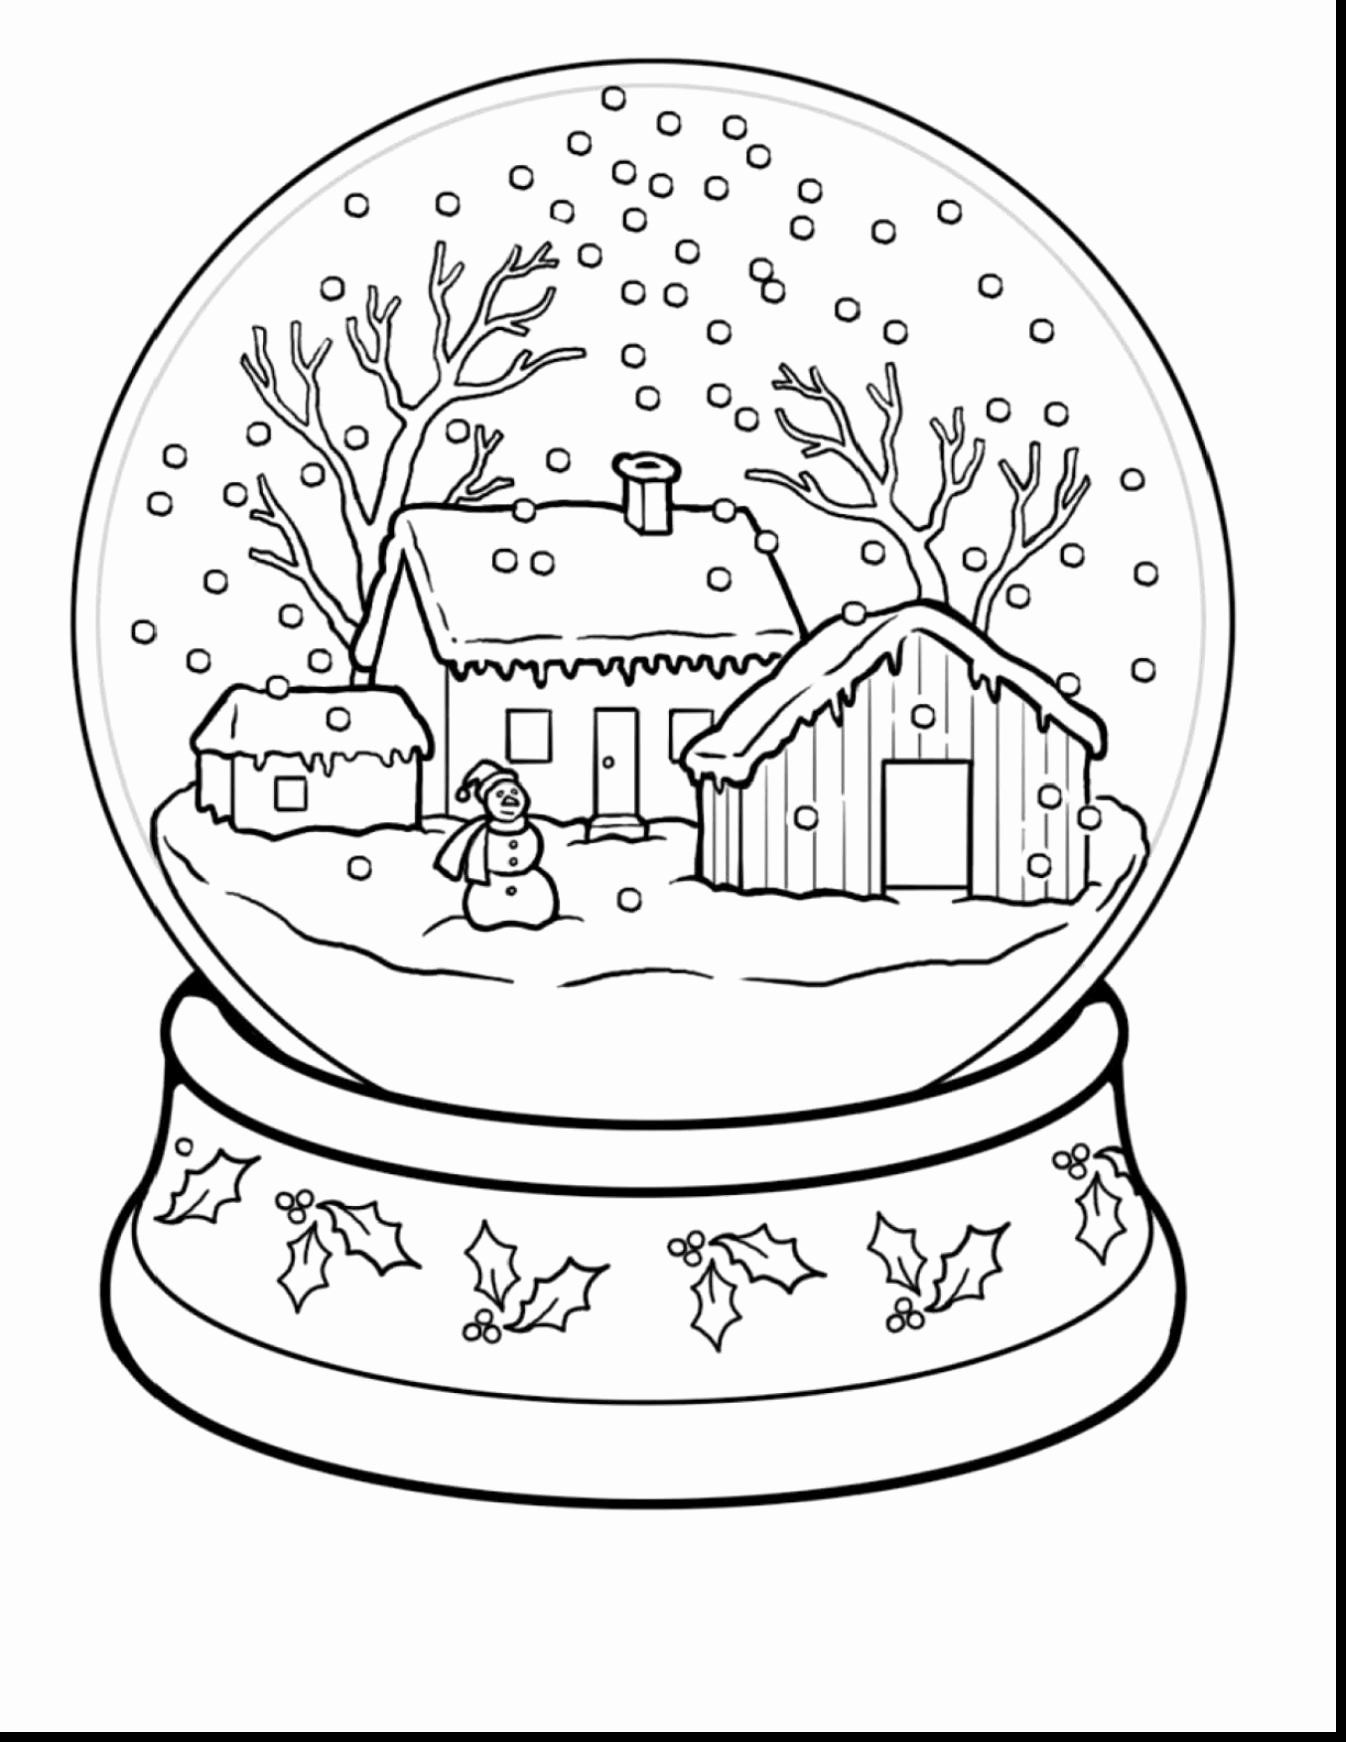 Winter Coloring Pages Printables New Extraordinary Ideas Printable Winter Coloring Pages Dog In Coloring Books Christmas Coloring Pages Coloring Pages